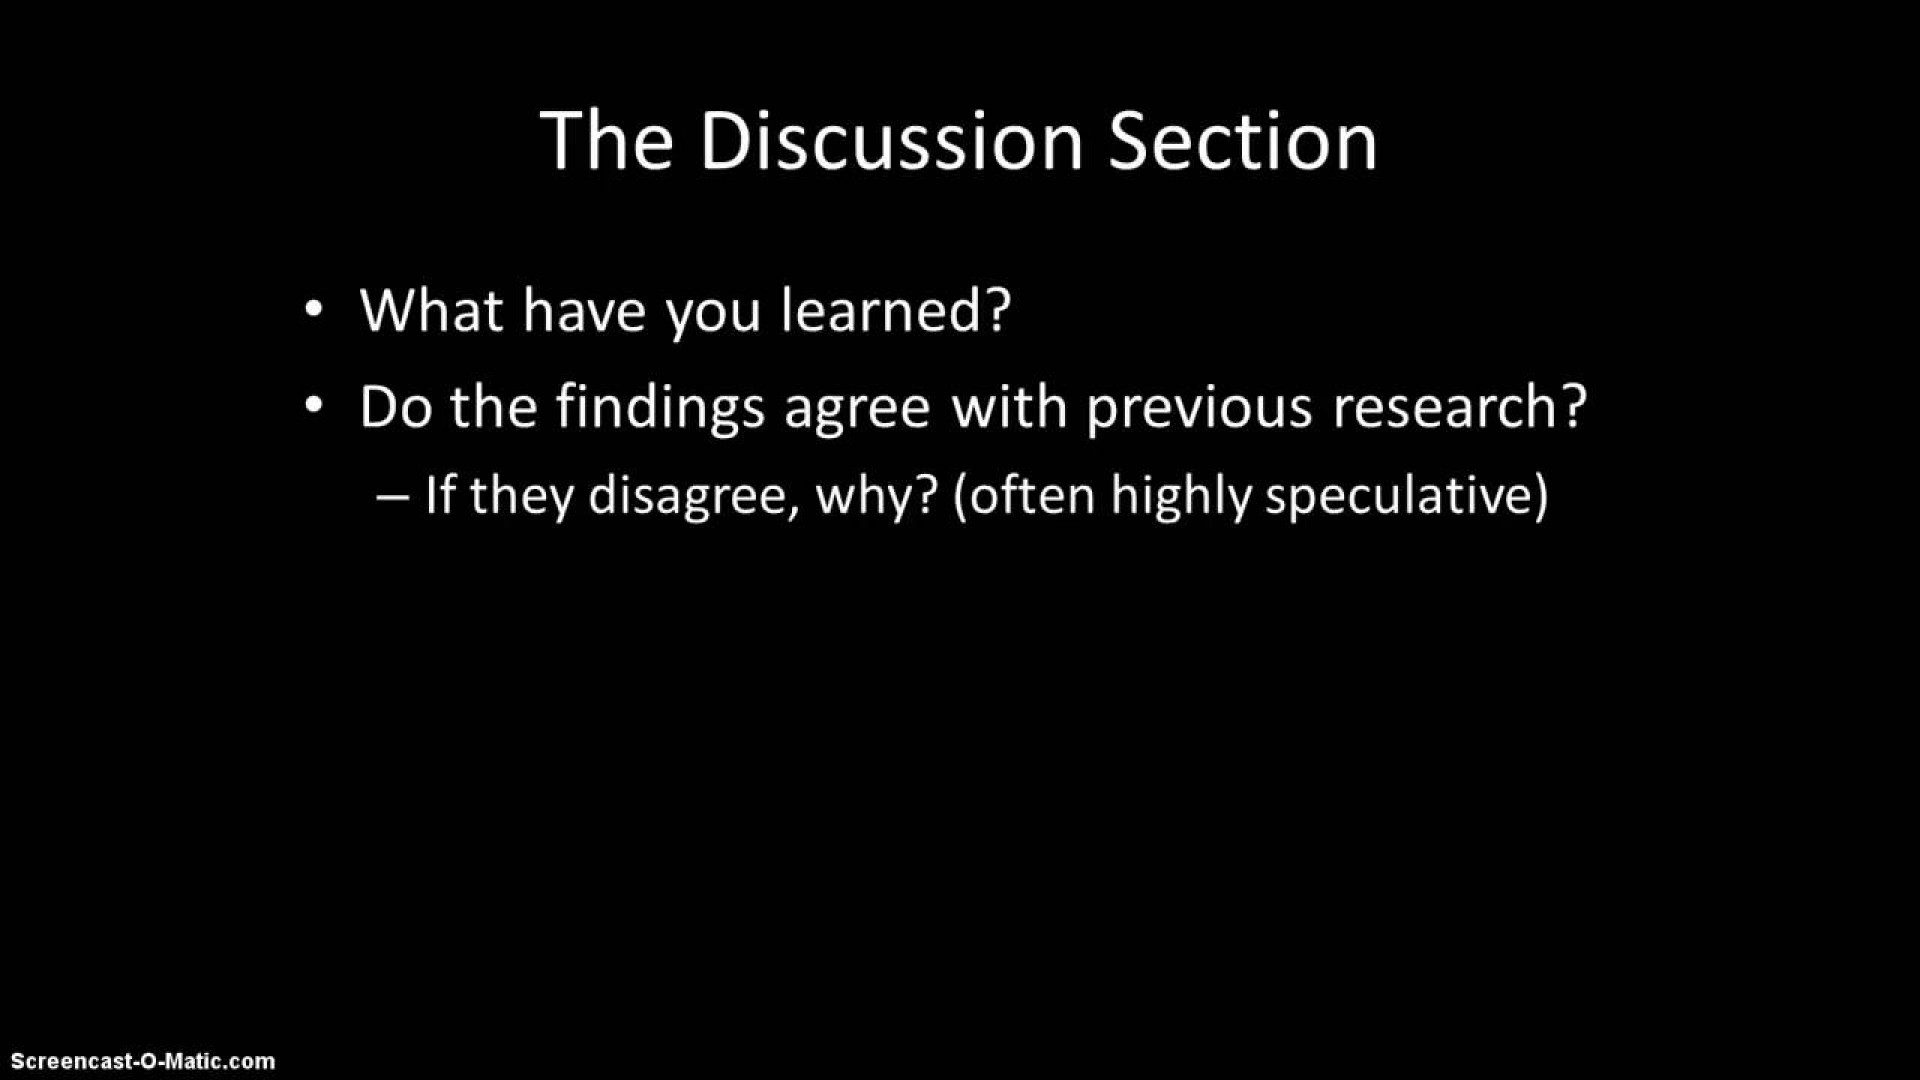 011 Research Paper How To Write Results Of Magnificent A And Discussion In Pdf The Section 1920